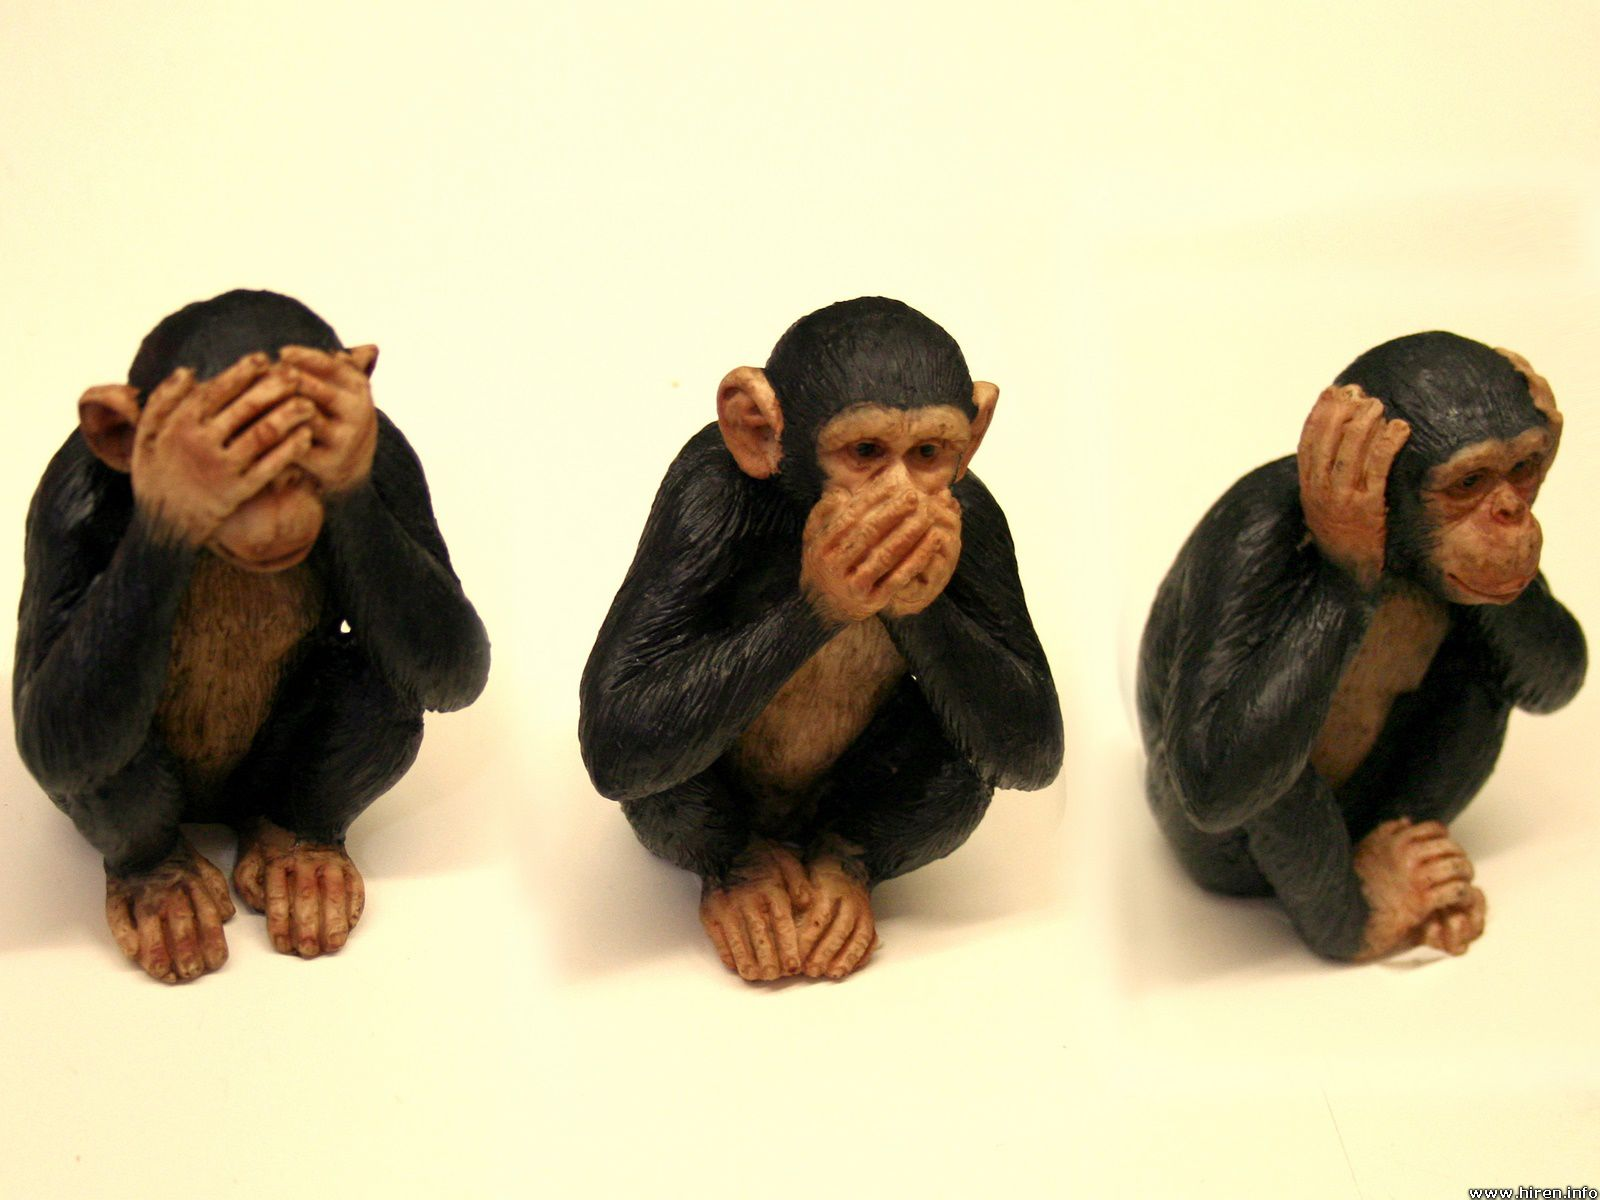 See no evil, speak no evil, hear no evil.